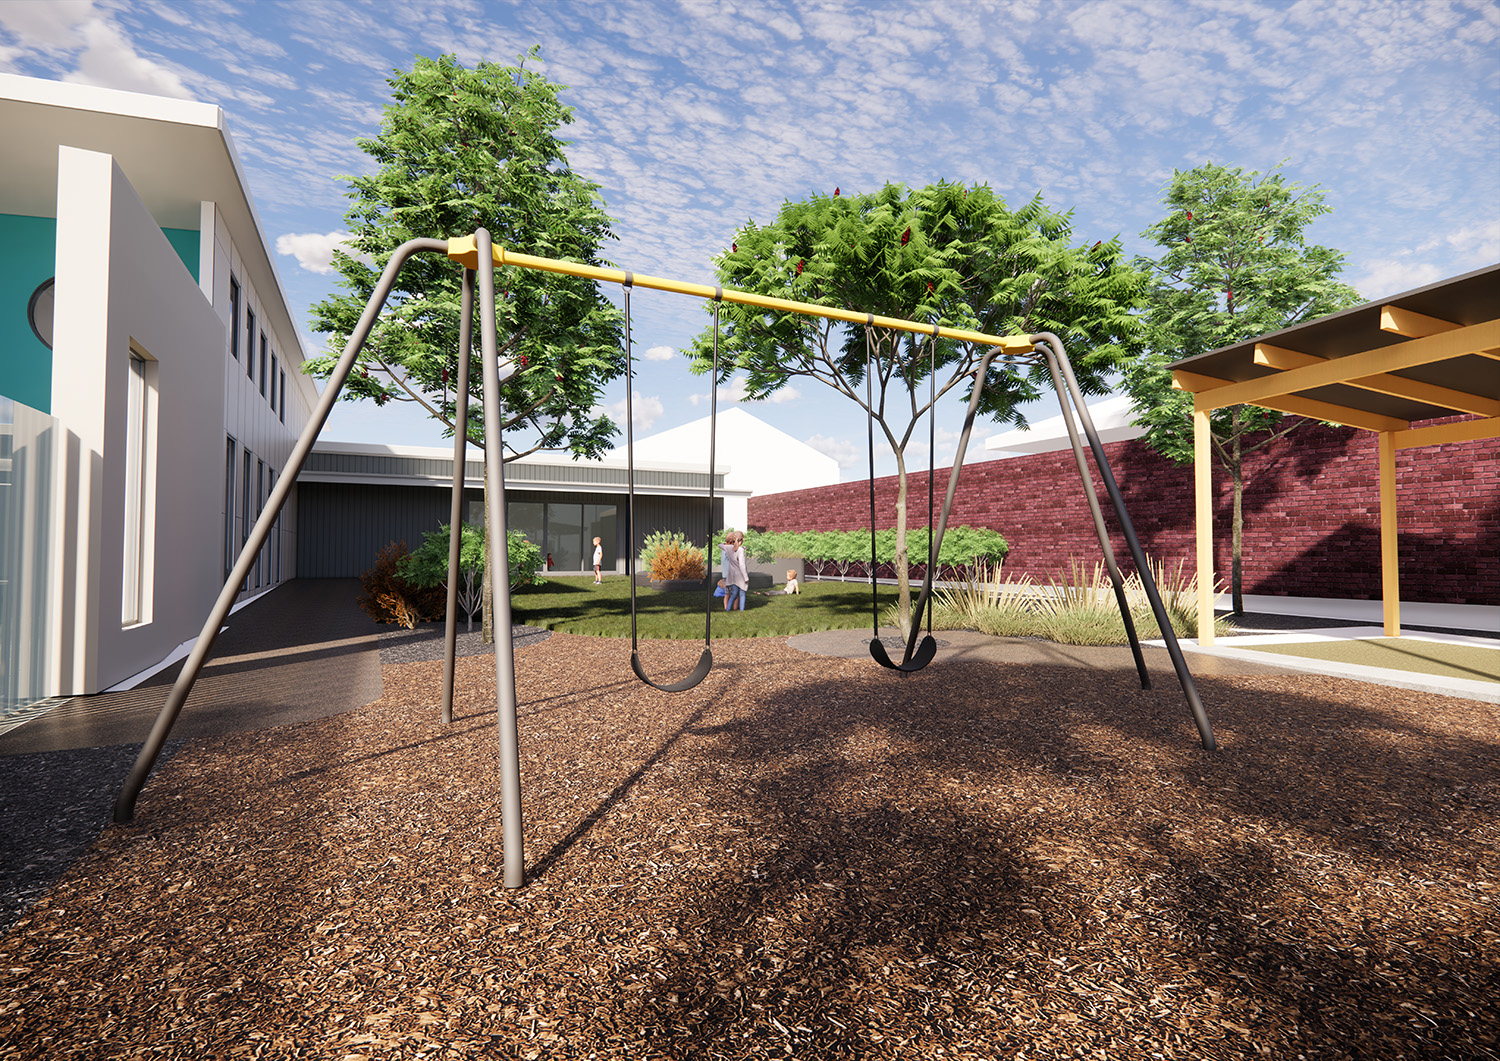 A graphic render of what the outdoor space will look like after the upgrade is complete.